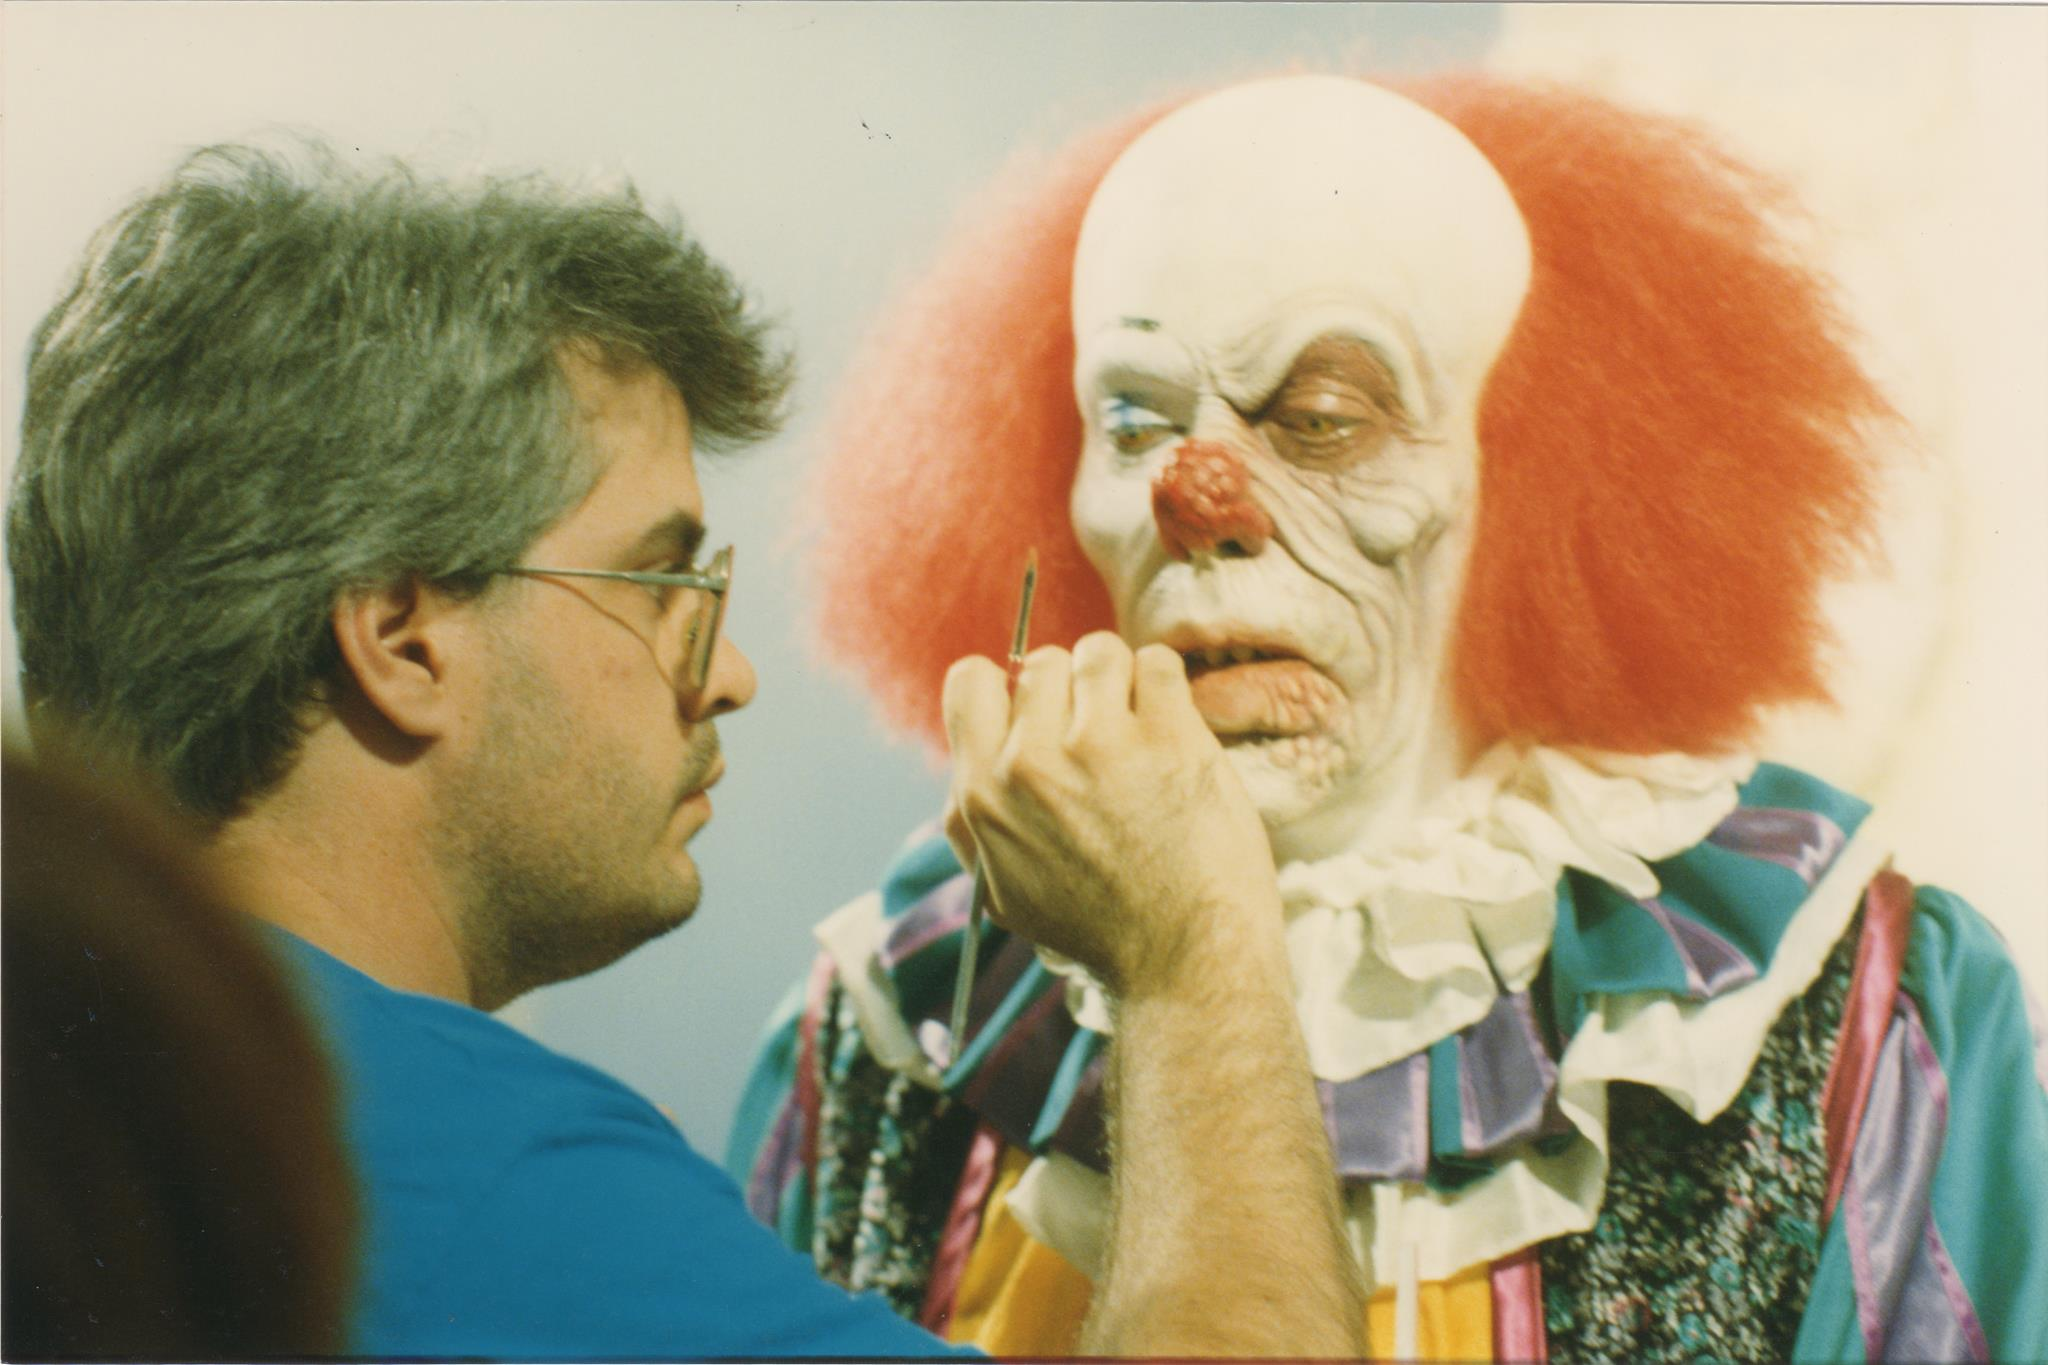 bart mixon pennywise 40 Facts You Probably Didn't Know About Tim Curry